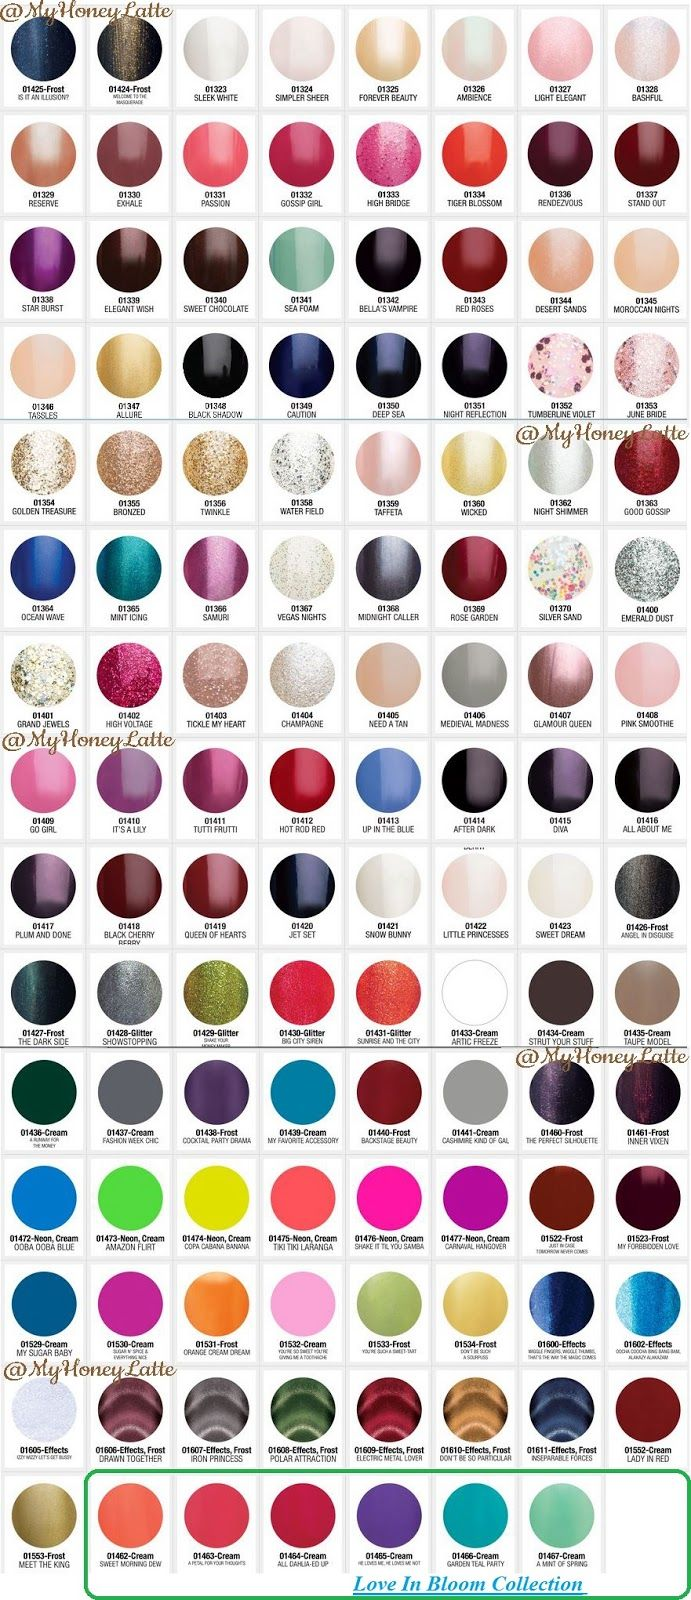 Myhoneylatte gelish color swatches gel manicure must wear uv myhoneylatte gelish color swatches gel manicure must wear uv protective glove nvjuhfo Image collections